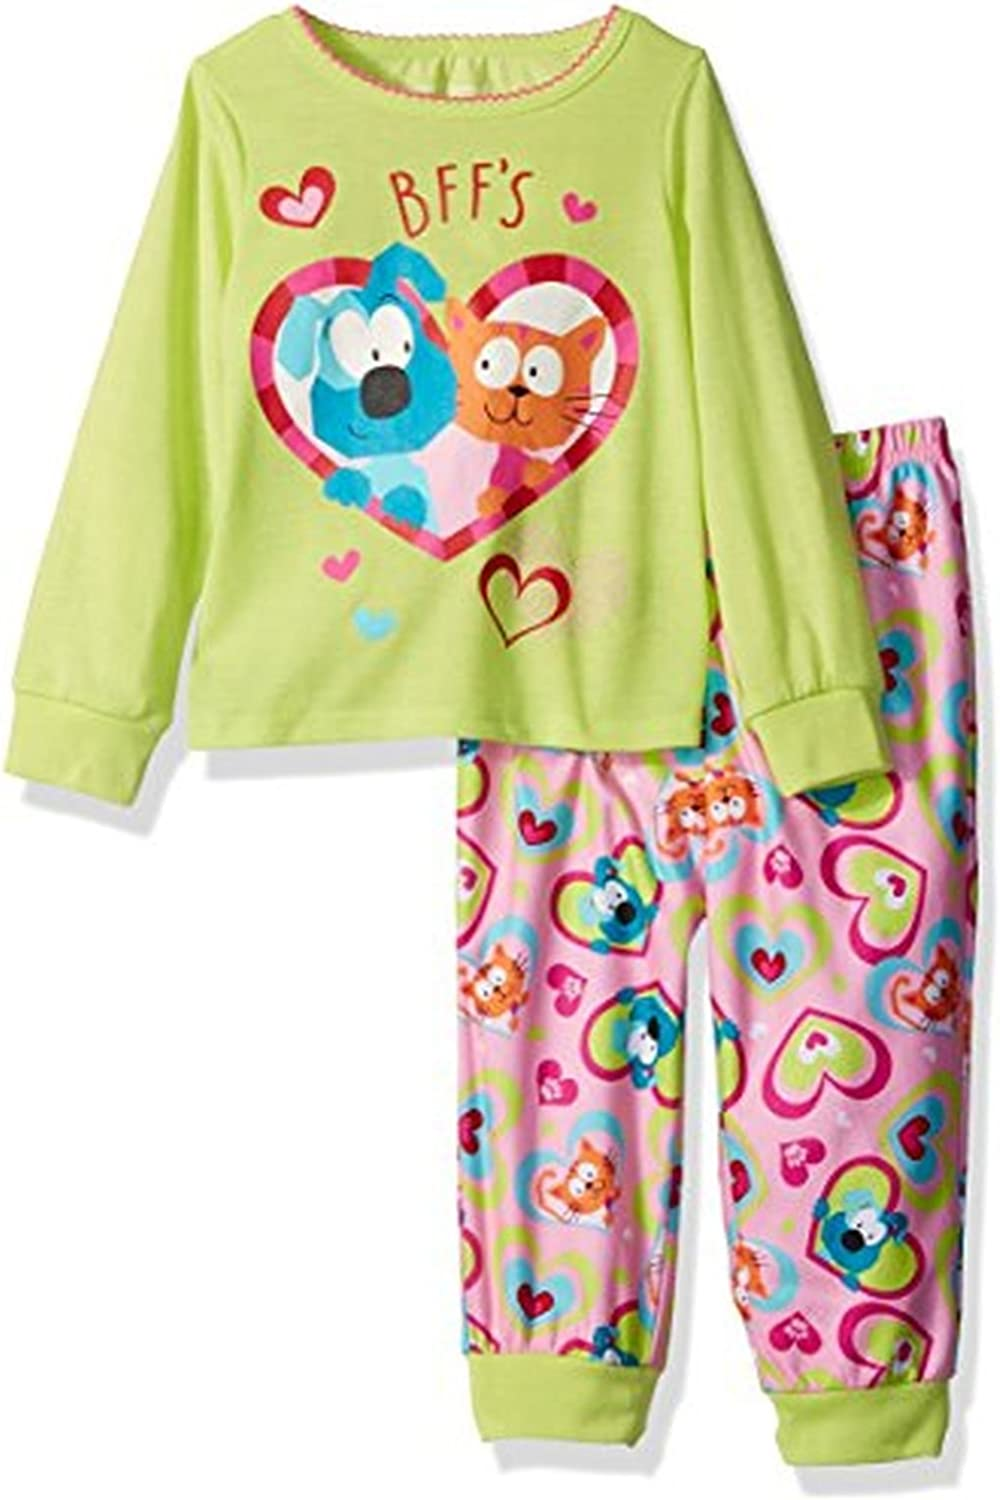 Toddler Girl's BFF Best Friends Cat and Dog Pajama Set